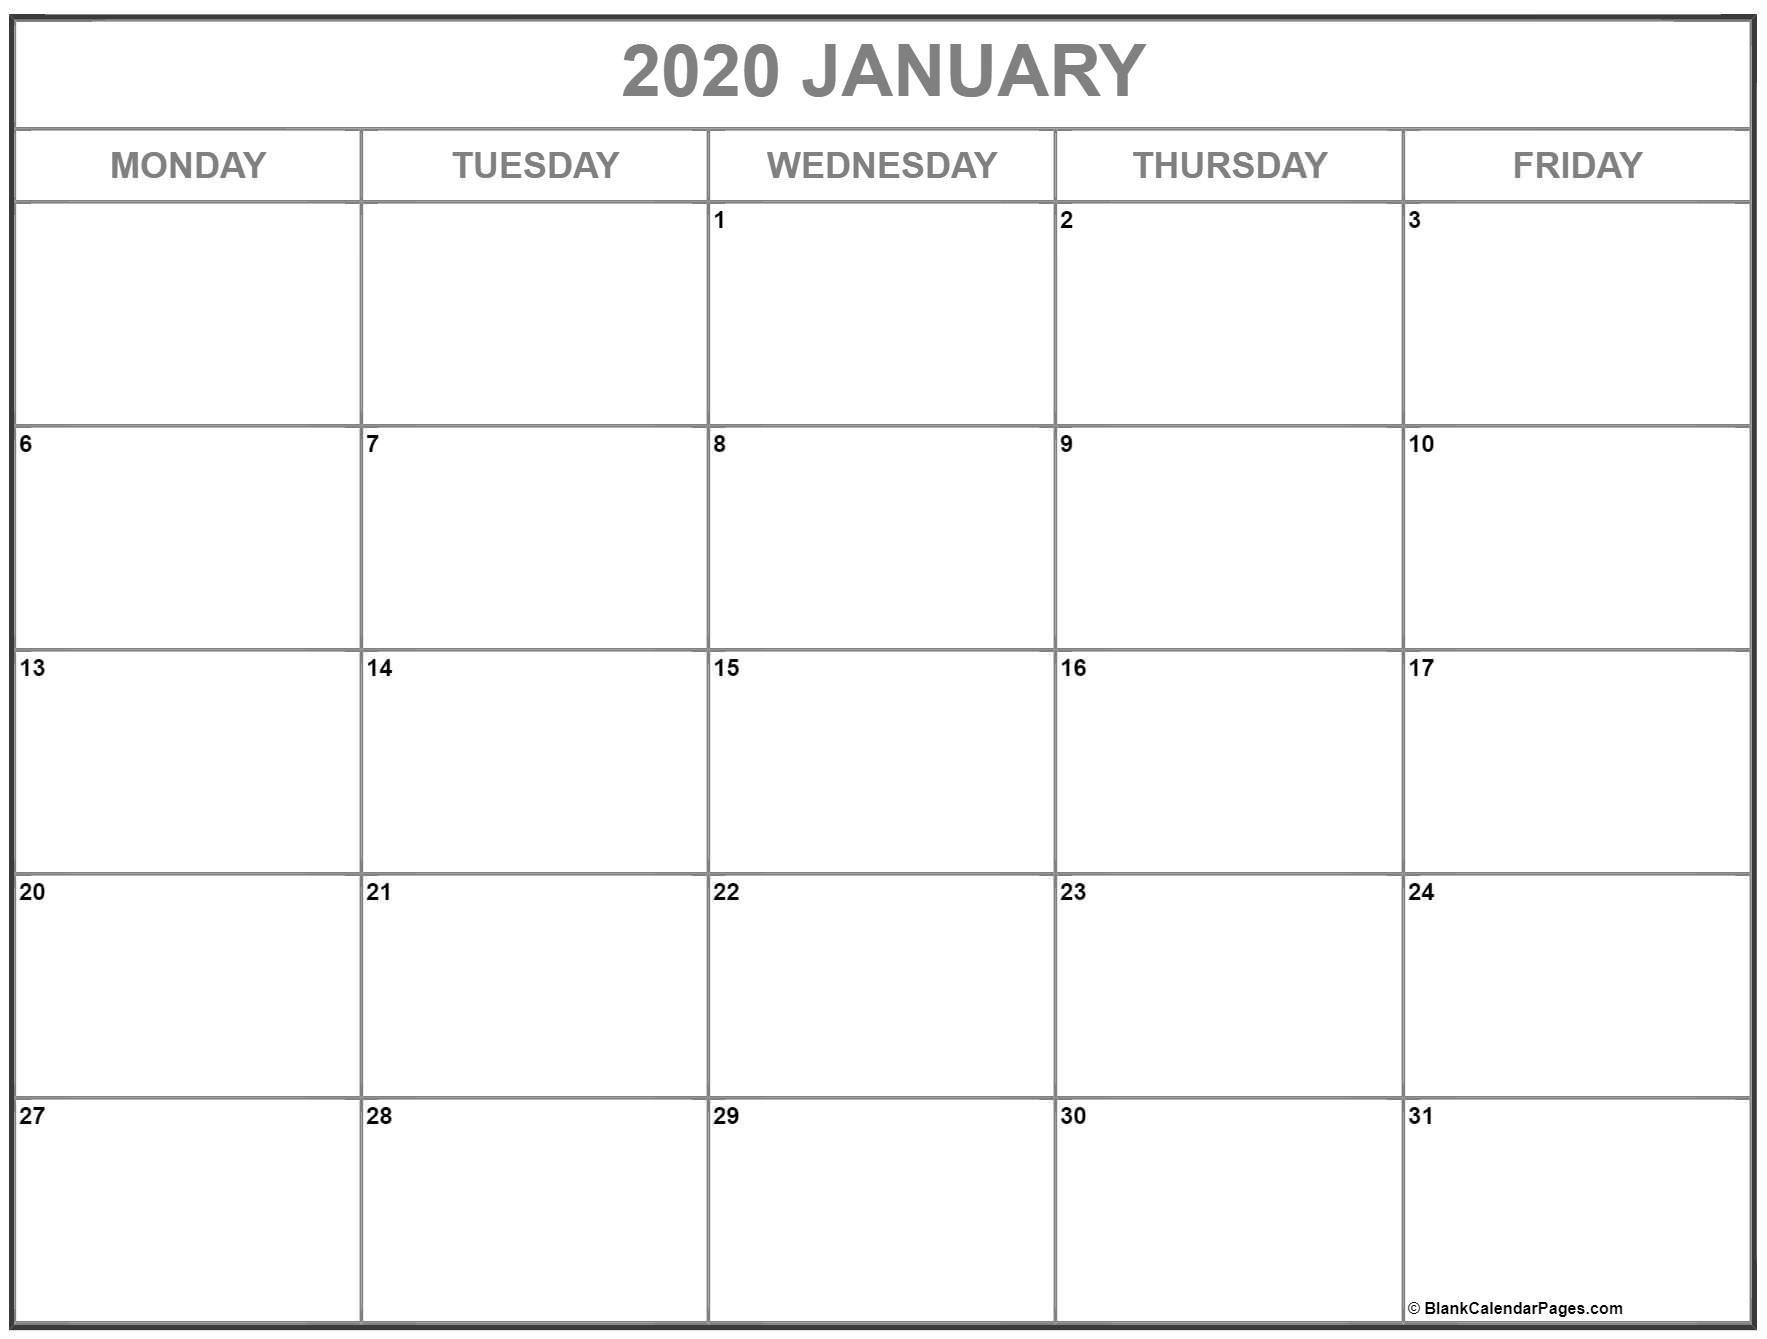 How To Monday To Friday Printable Monthly Calendar In 2020